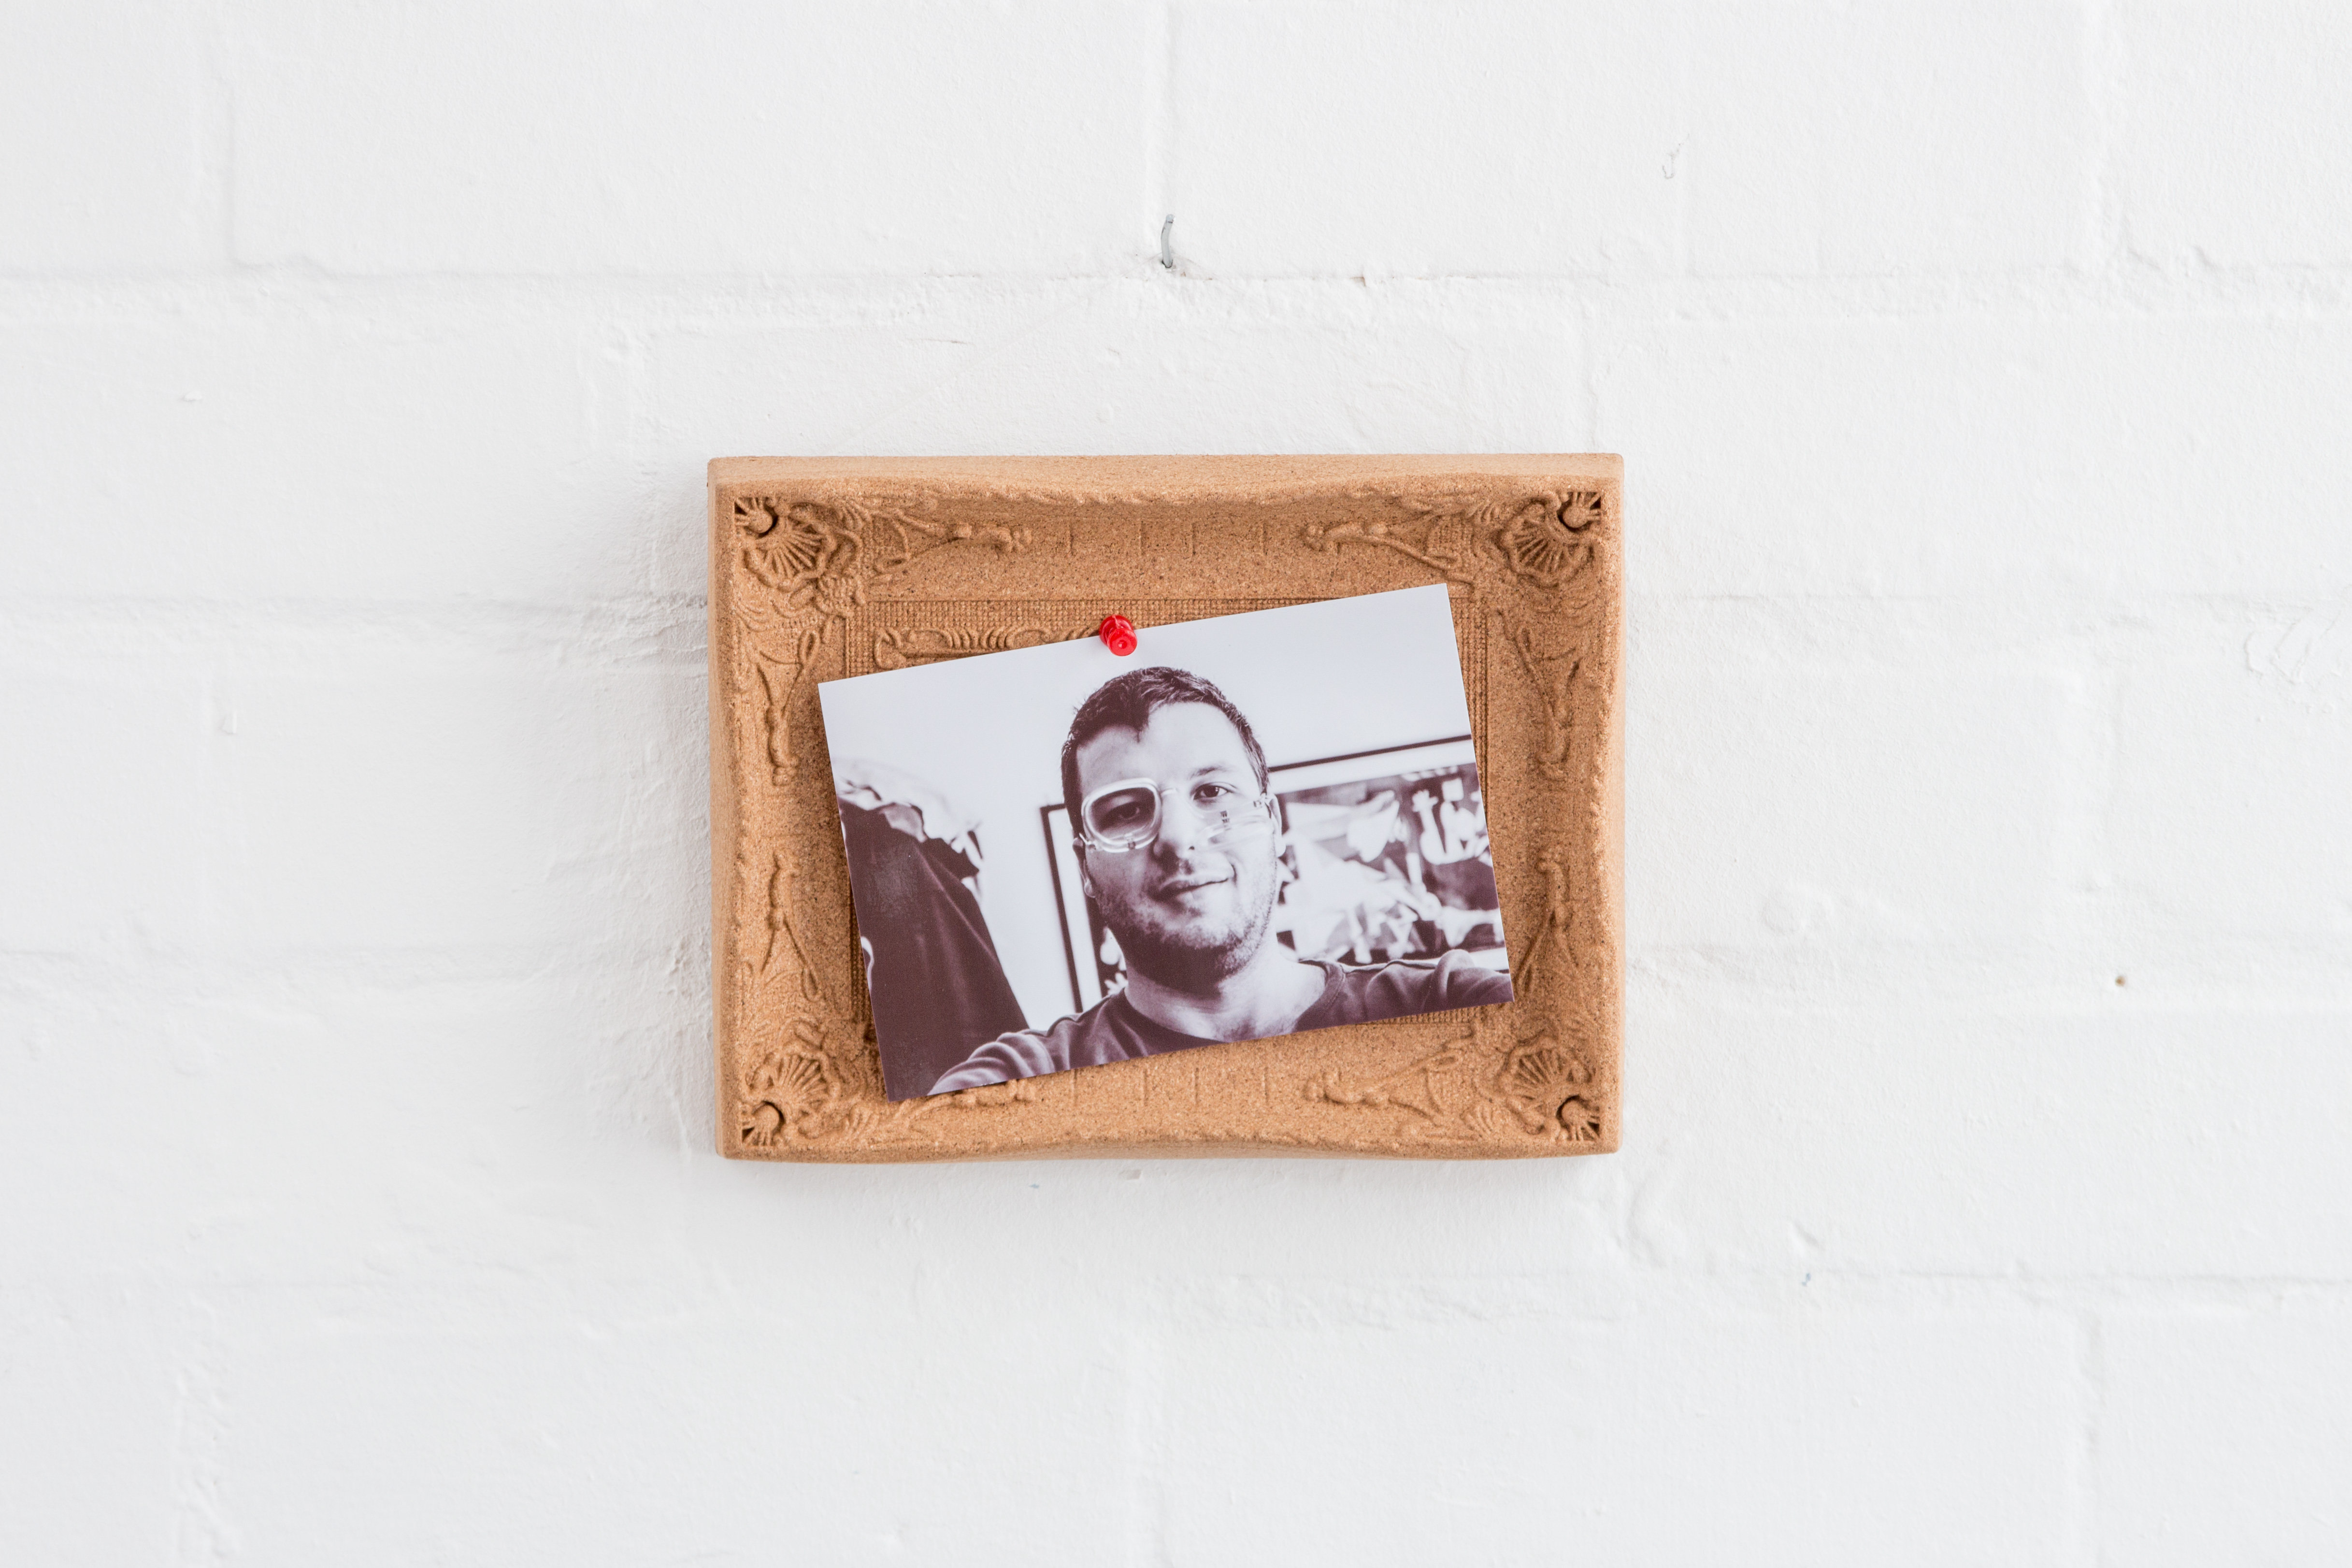 Desktop Cork Pinboard Content Gallery : Ornate picture frame made ...